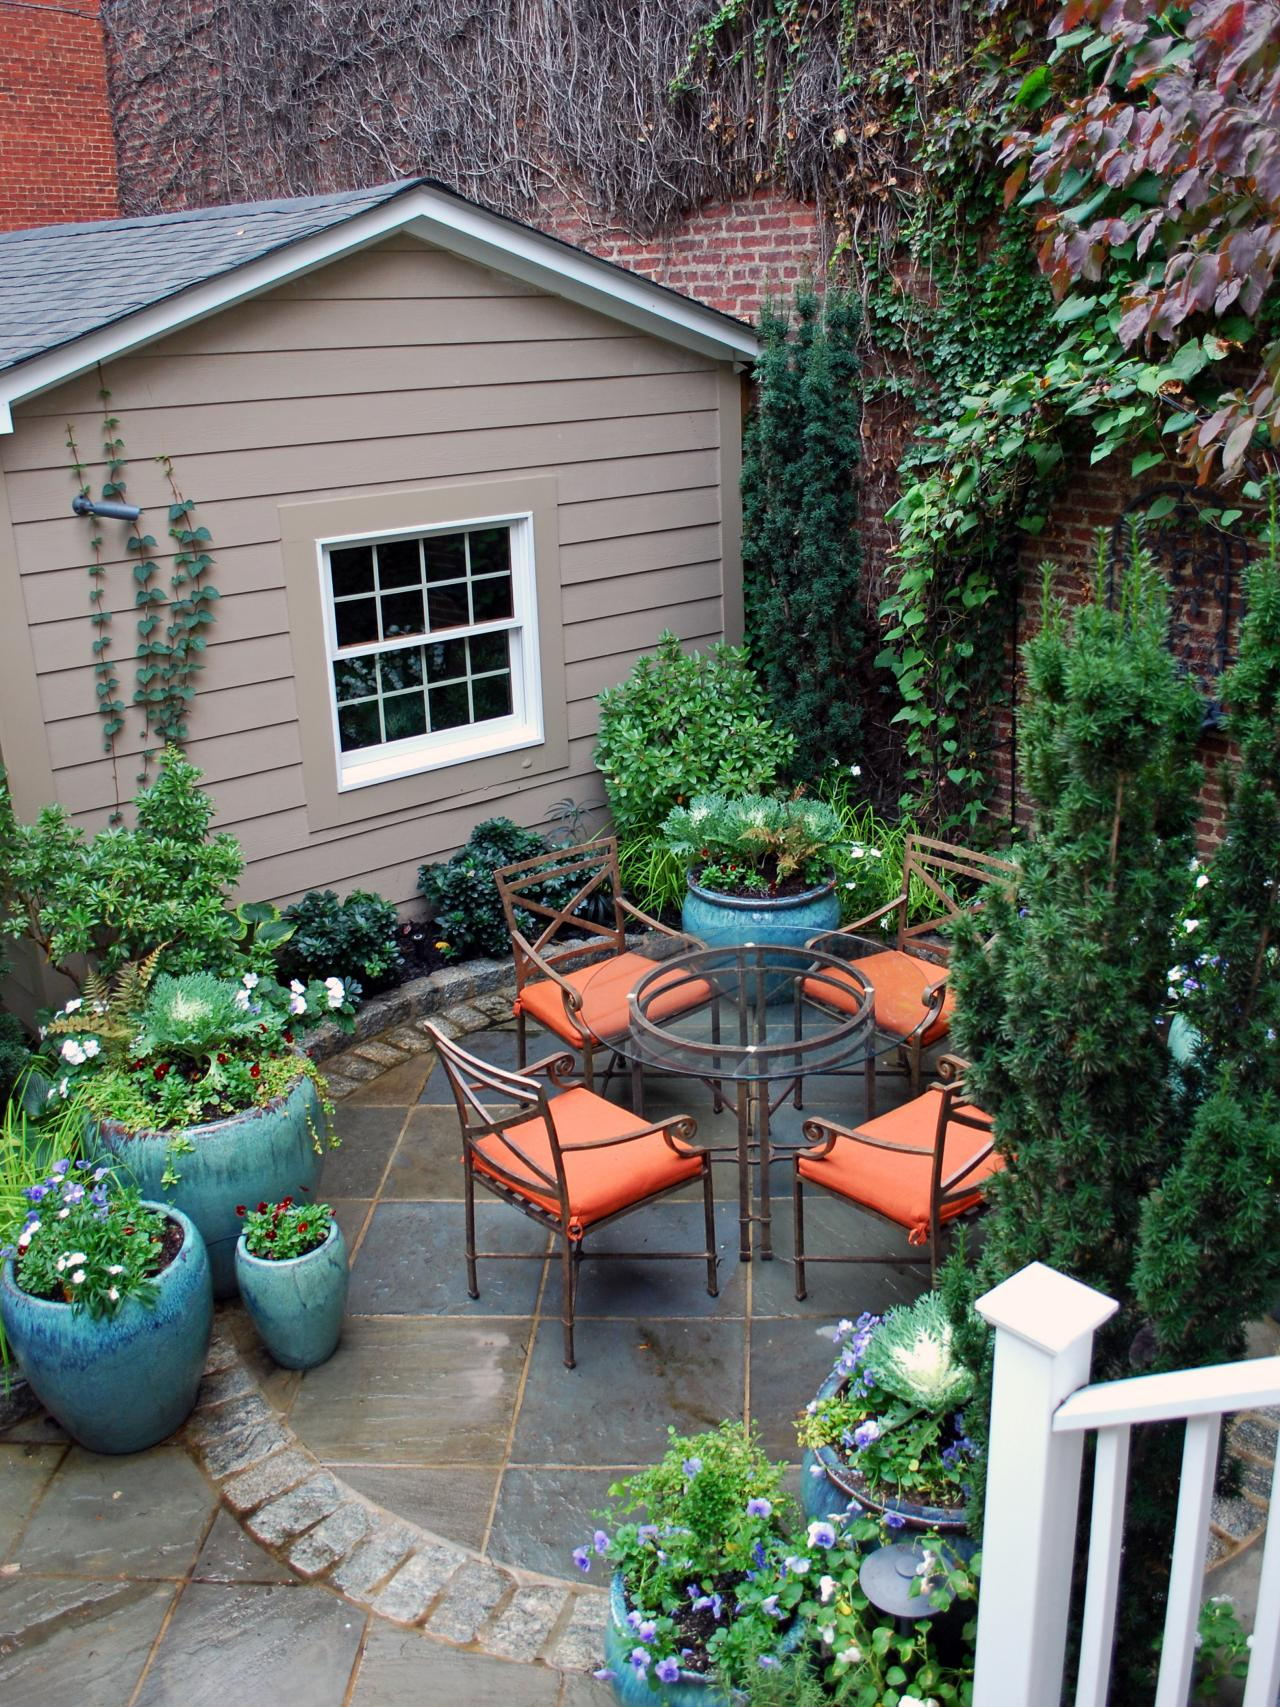 Optimize your small outdoor space hgtv for Landscaping ideas for small areas